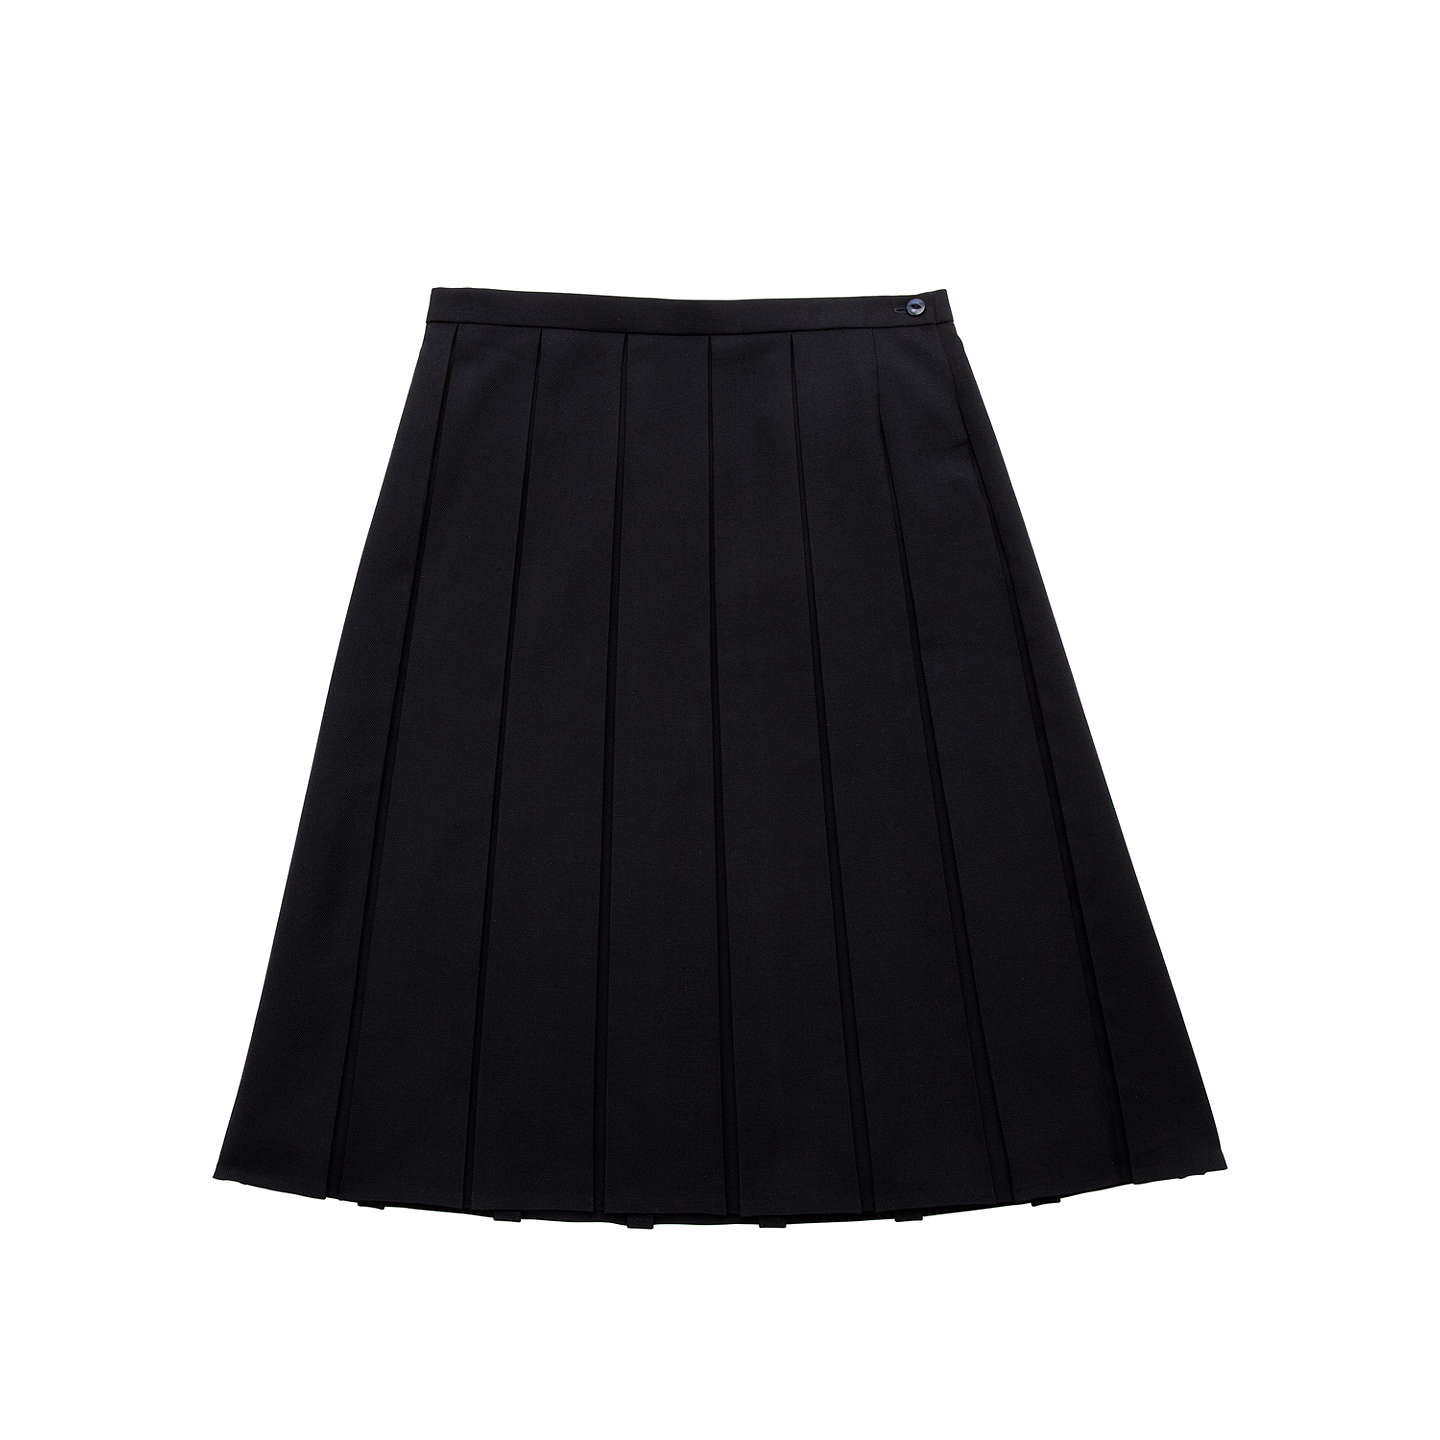 BuyPresdales School Box Pleat Skirt, Navy, W26/L30 Online at johnlewis.com